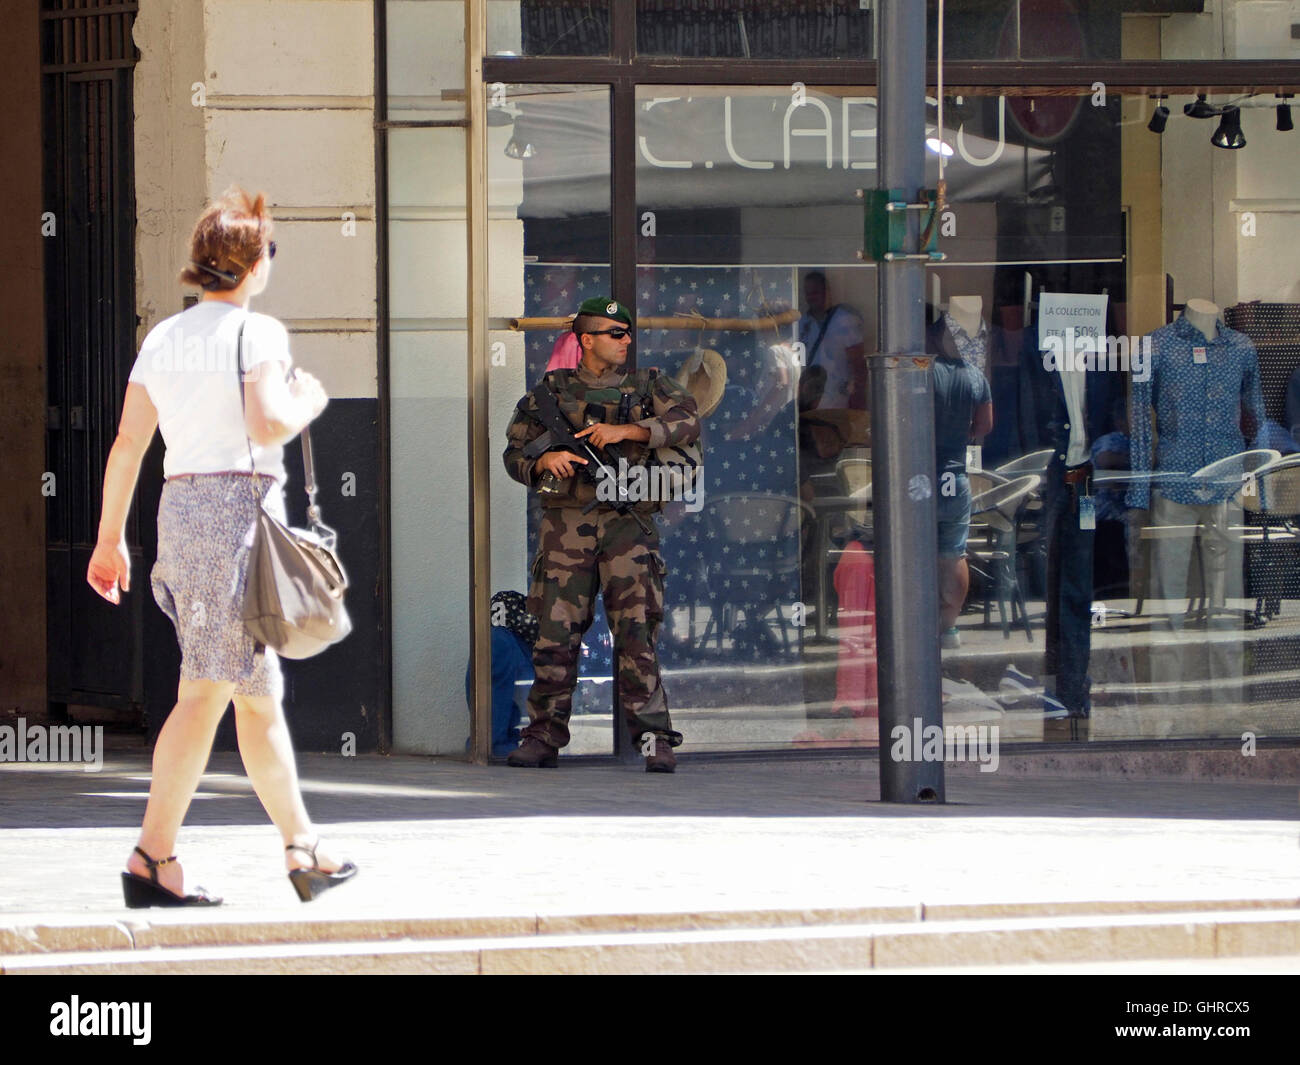 Heavily armed French elite soldiers can be seen on the streets in many places these days, this picture was shot - Stock Image